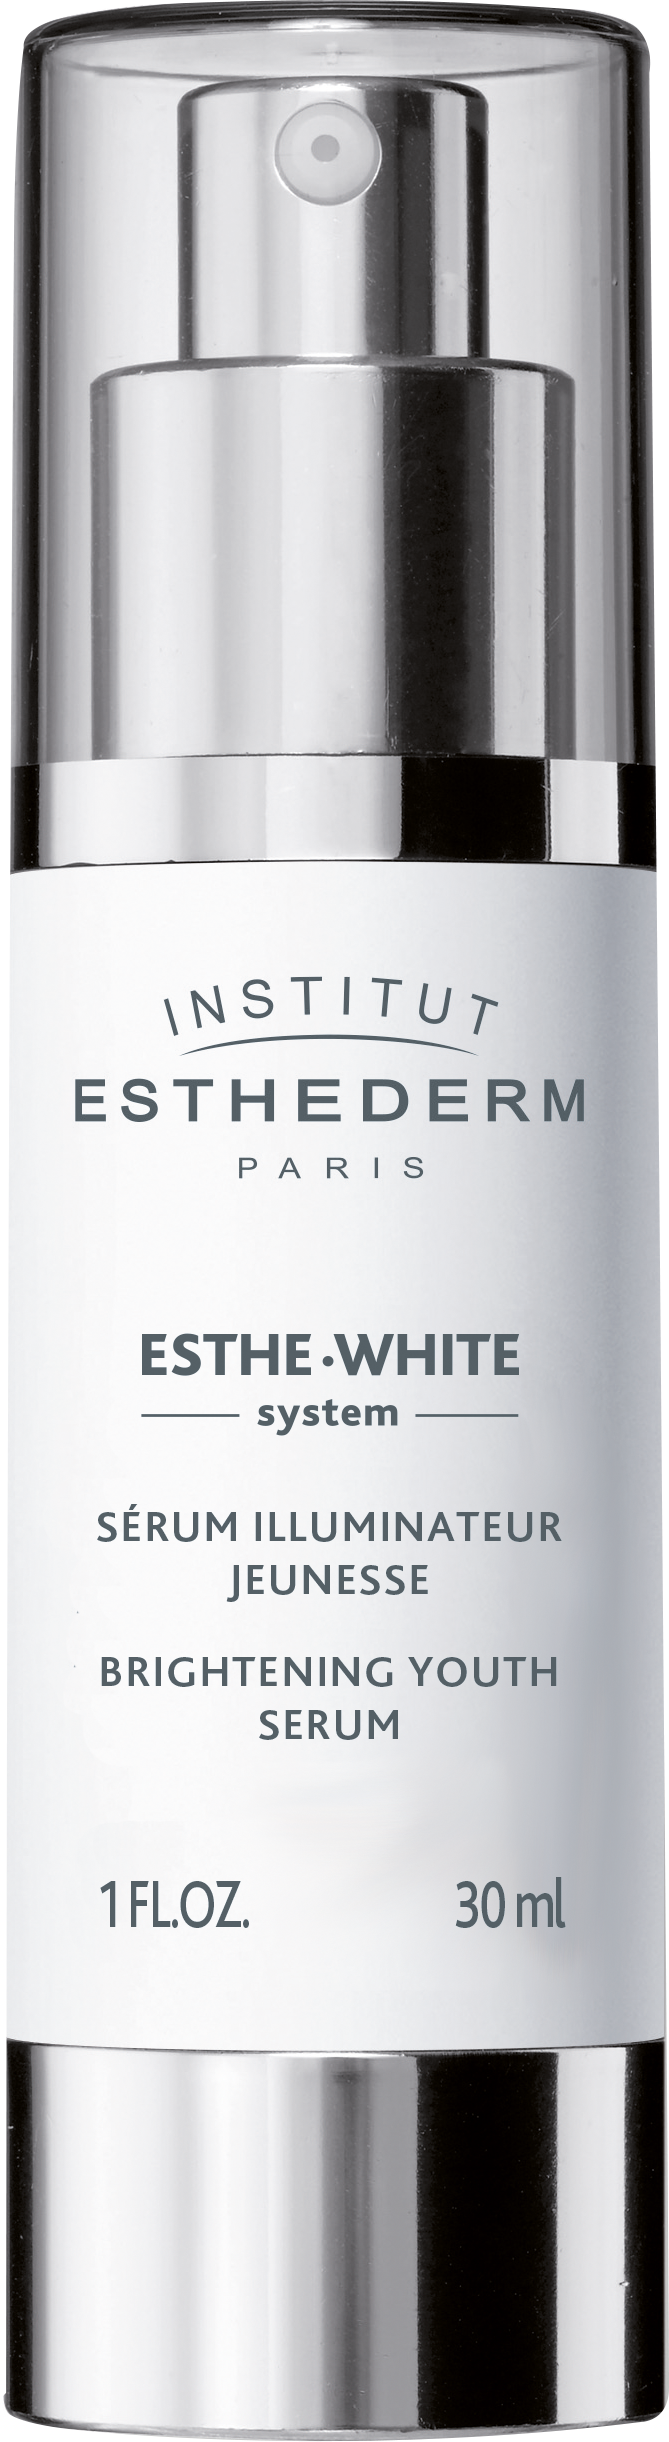 Esthe-White Brightening youth Serum